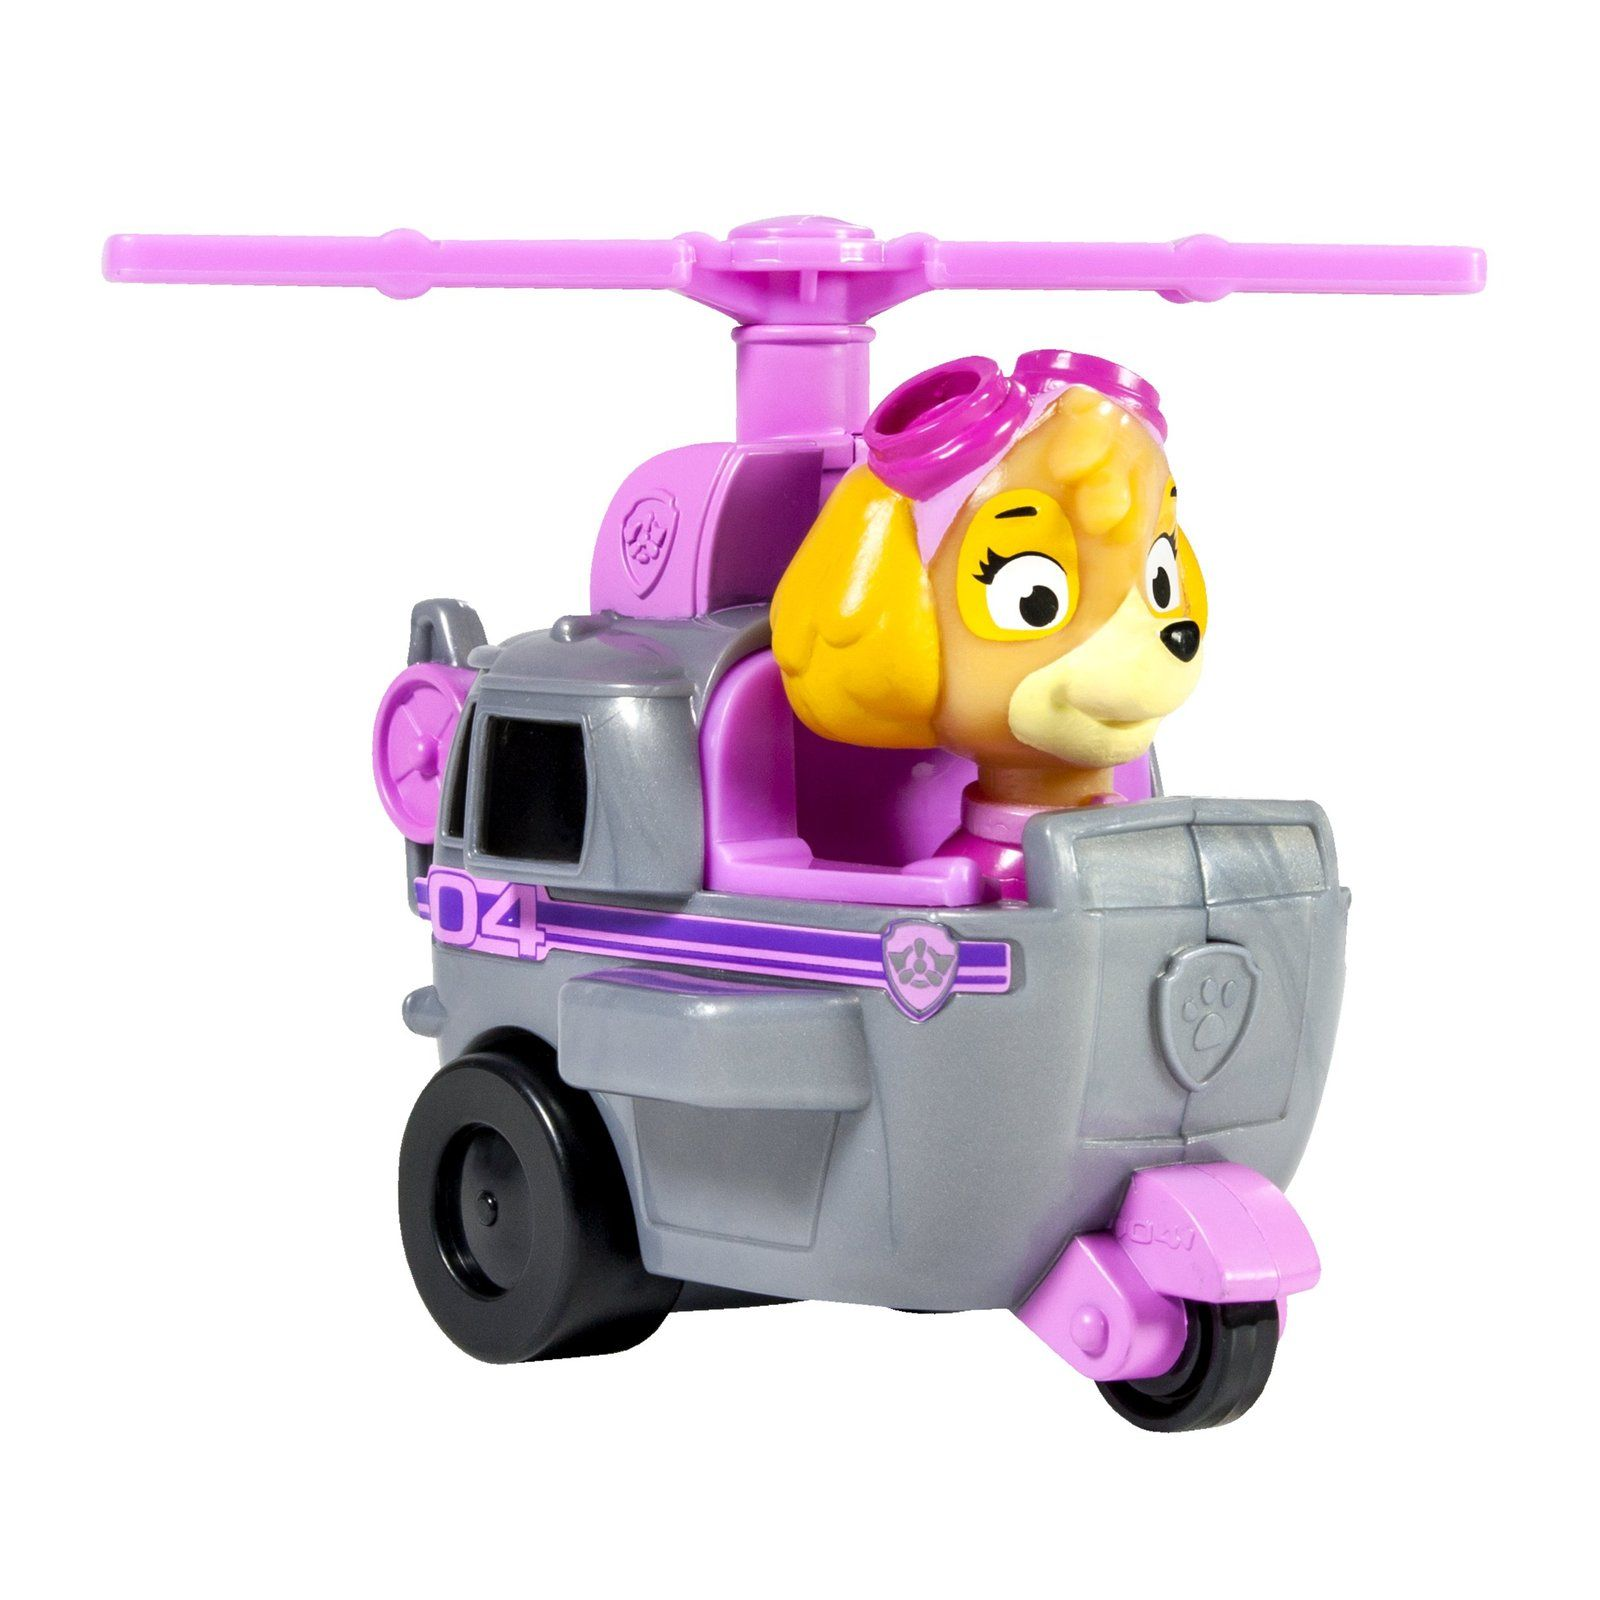 Paw Patrol Racers Are Made For Speed With Real Working Wheels For